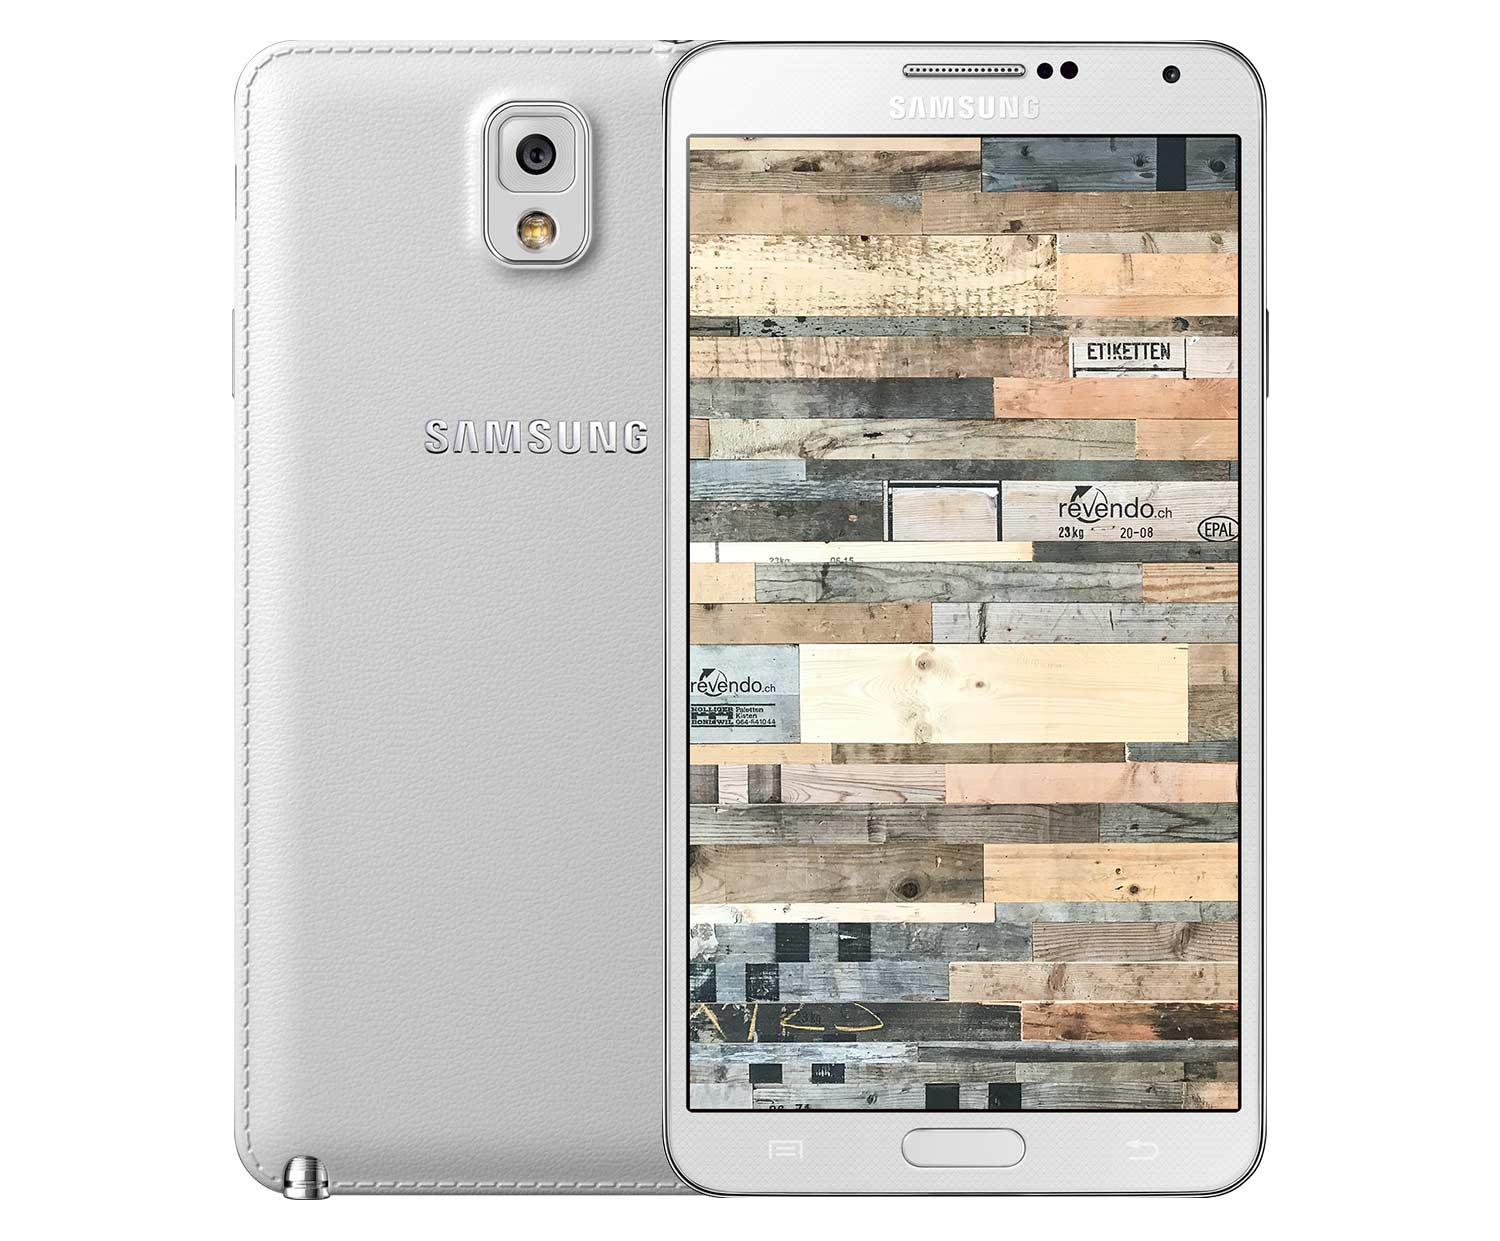 samsung galaxy note3 32 gb weiss. Black Bedroom Furniture Sets. Home Design Ideas